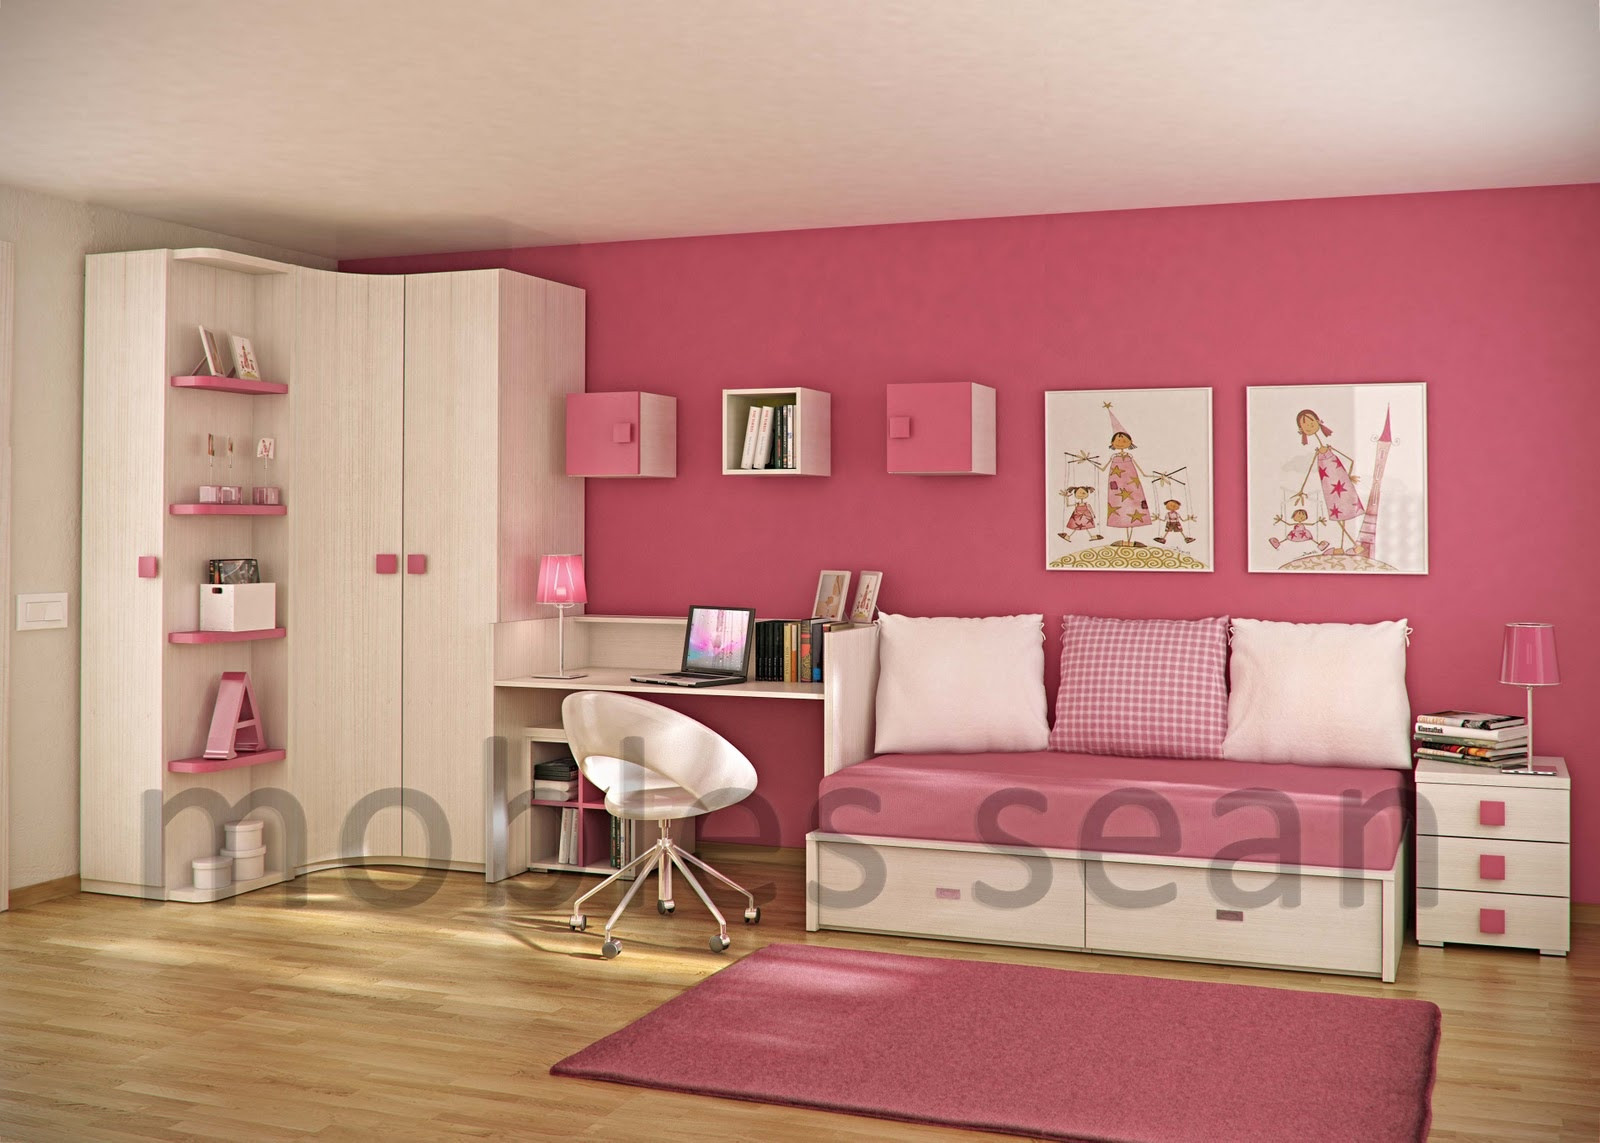 Kids Room Decor Ideas  Space Saving Designs for Small Kids Rooms